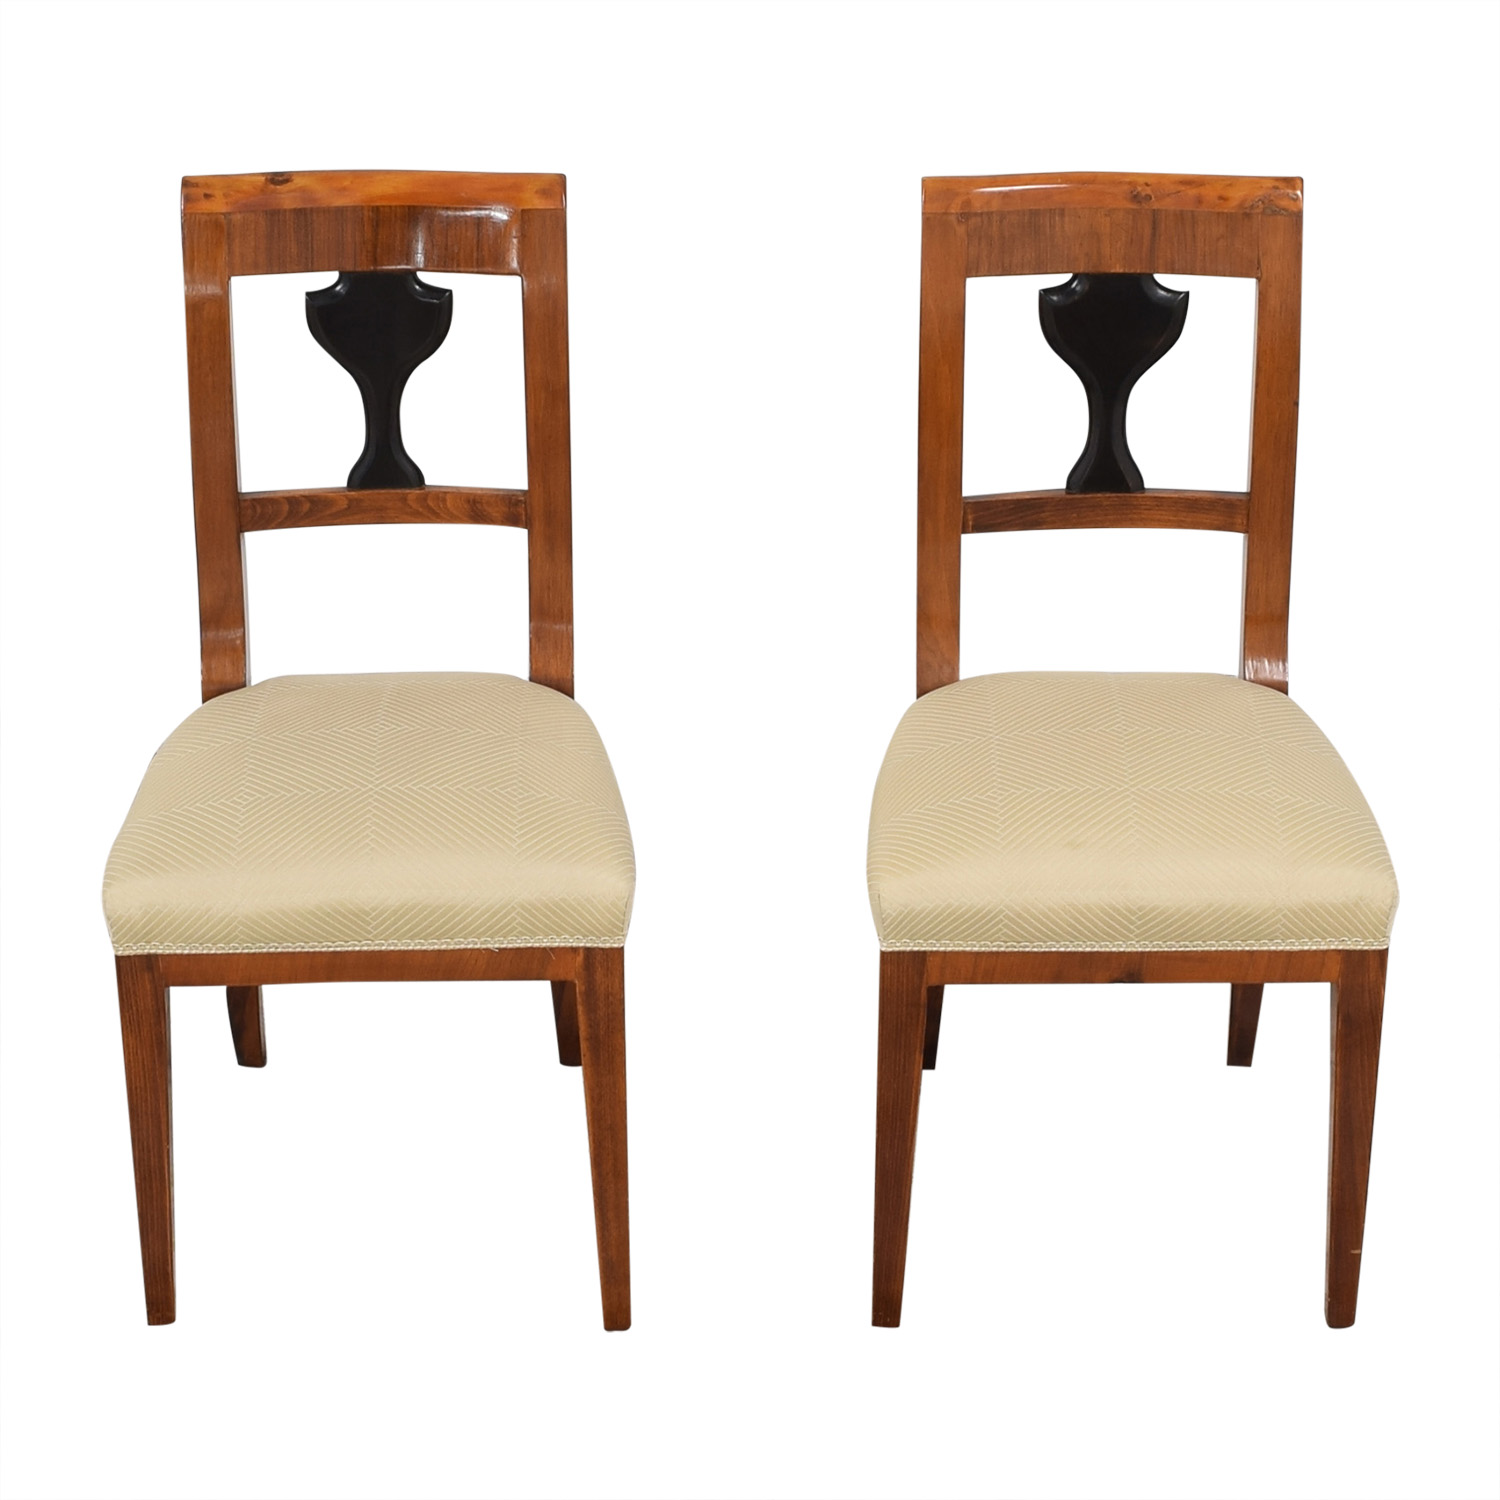 Upholstered Dining Chairs ABC Carpet & Home